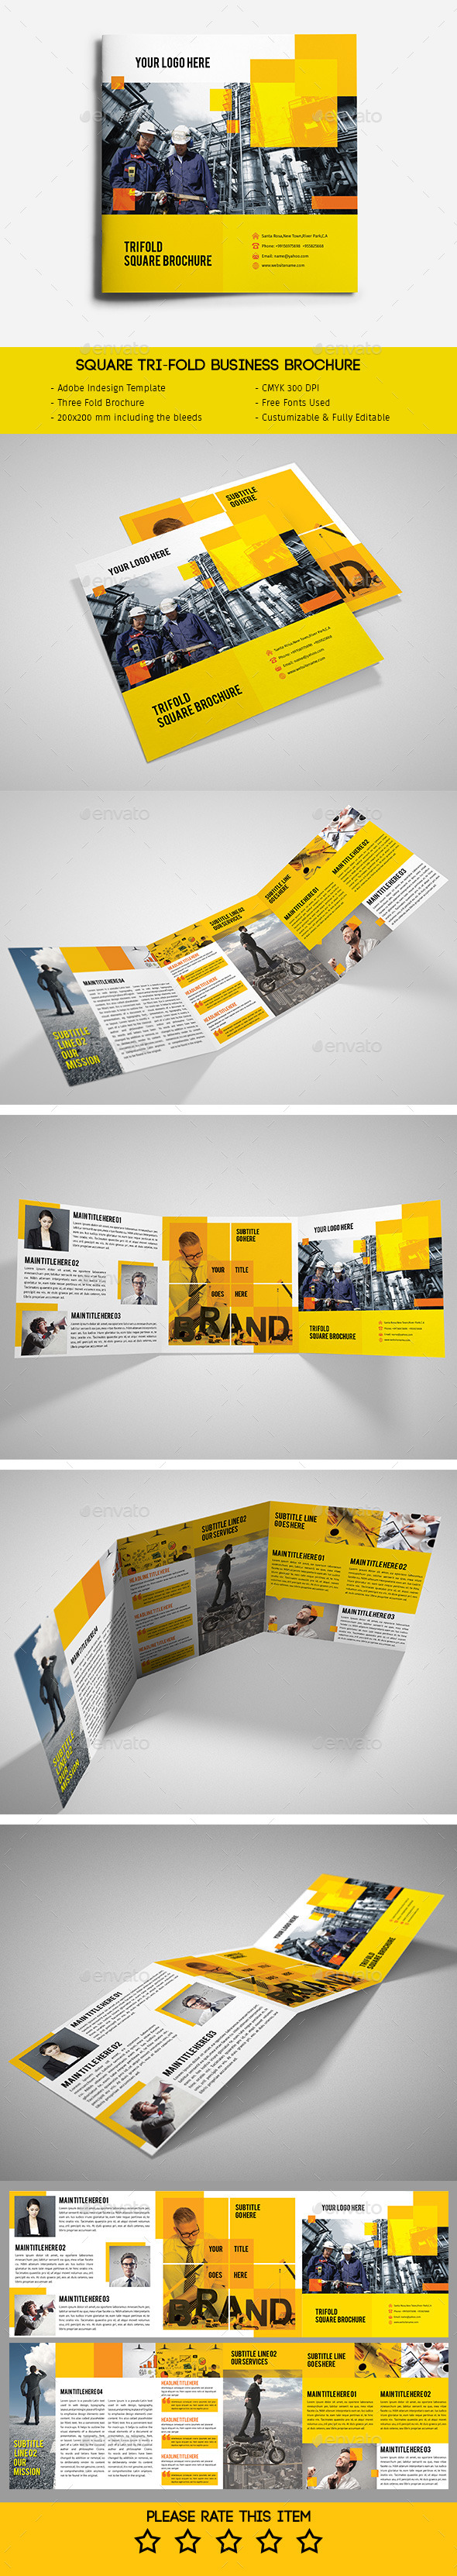 Square tri fold business brochure template design download http square tri fold business brochure template design download httpgraphicriveritemsquare trifold business brochure 11915043refksioks friedricerecipe Image collections